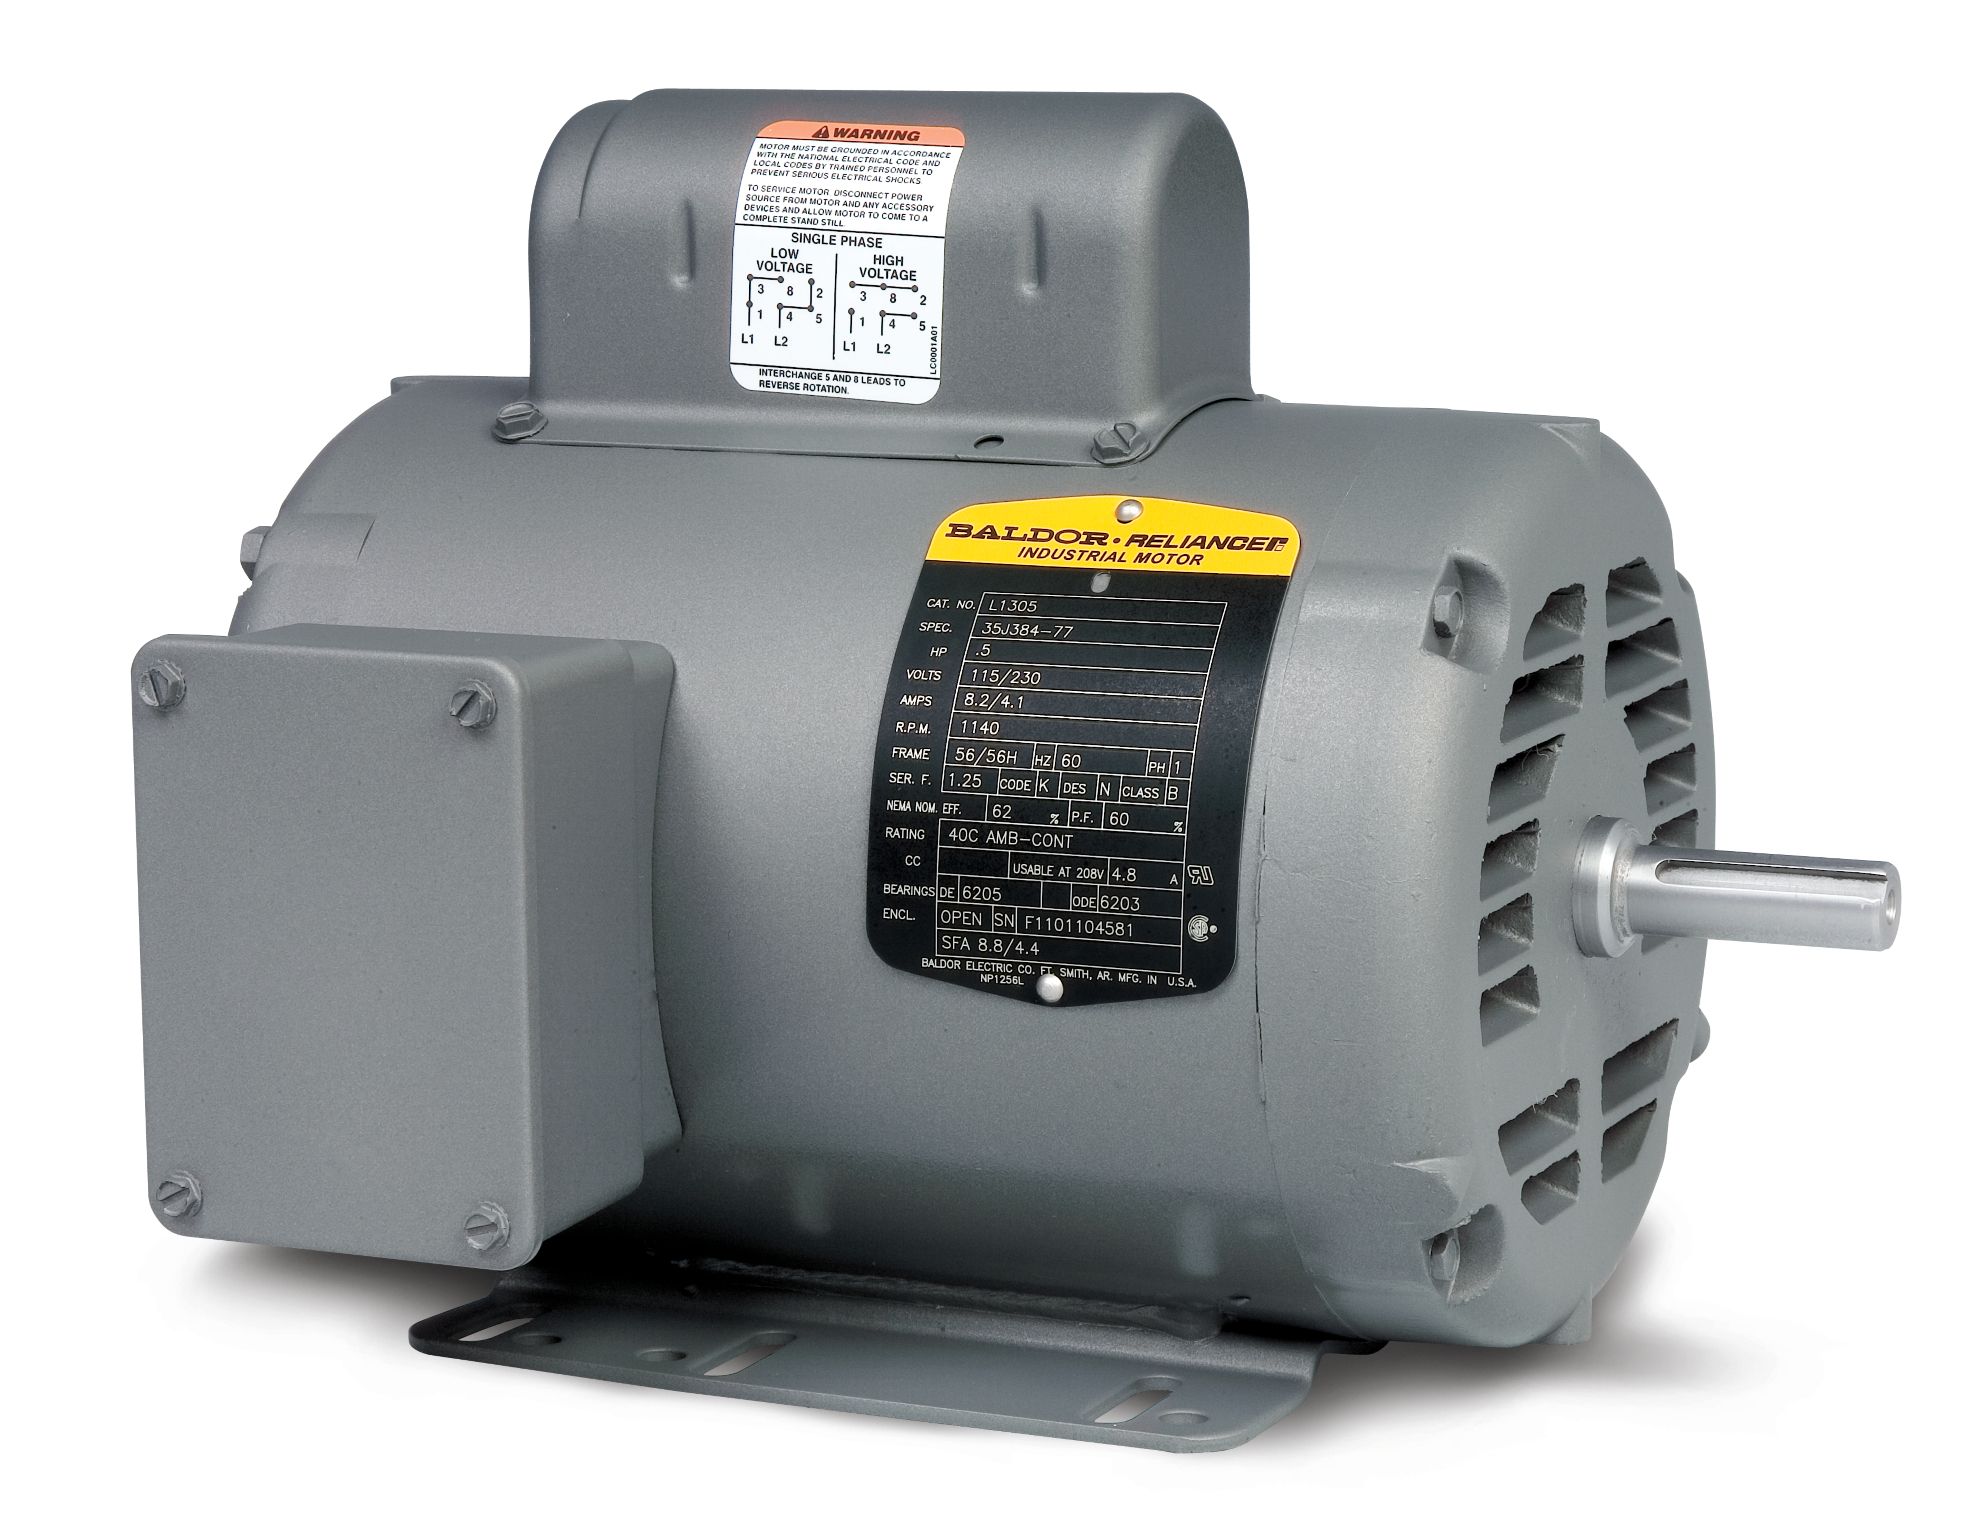 Baldor-Reliance L1304 AC Motor, 115/230 VAC, 3.7/7.4 A, 56 Frame, 0 on